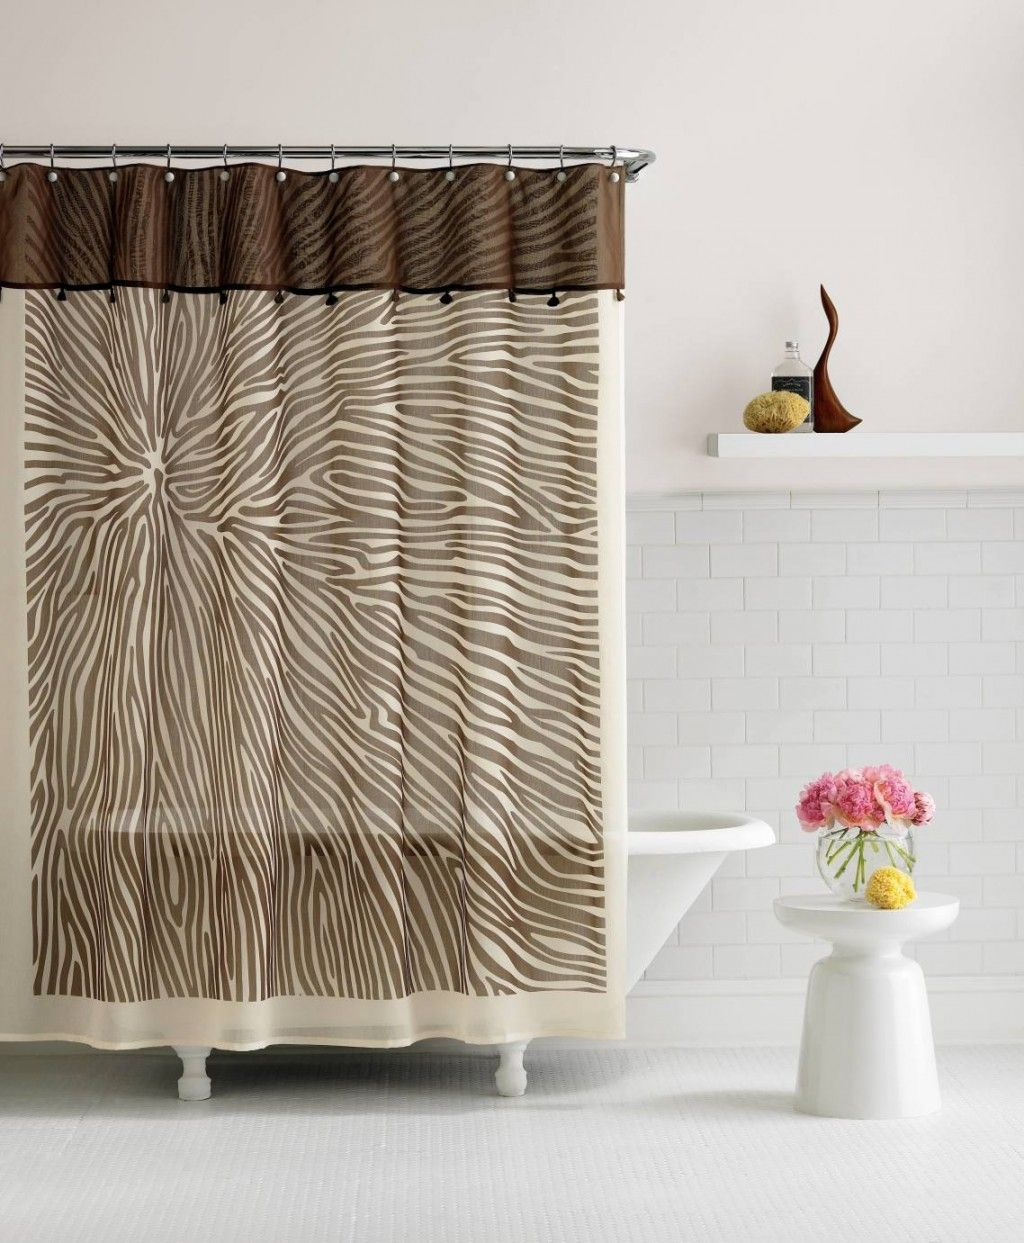 Bathroom 84 Inch Shower Curtain Creamy And Brown Patterned Extra ...